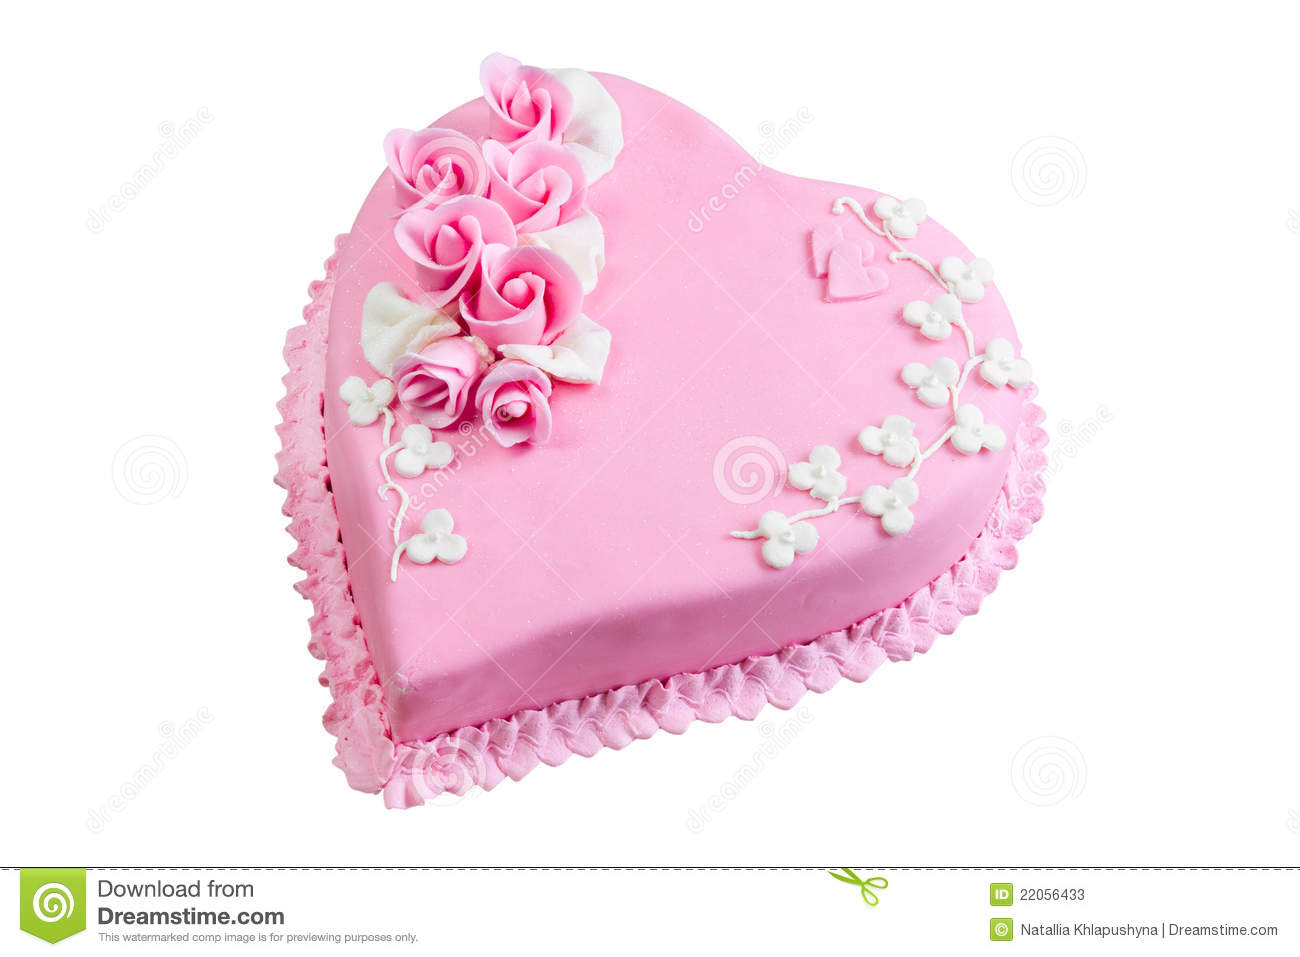 How To Decorate A Heart Shaped Cake Pt